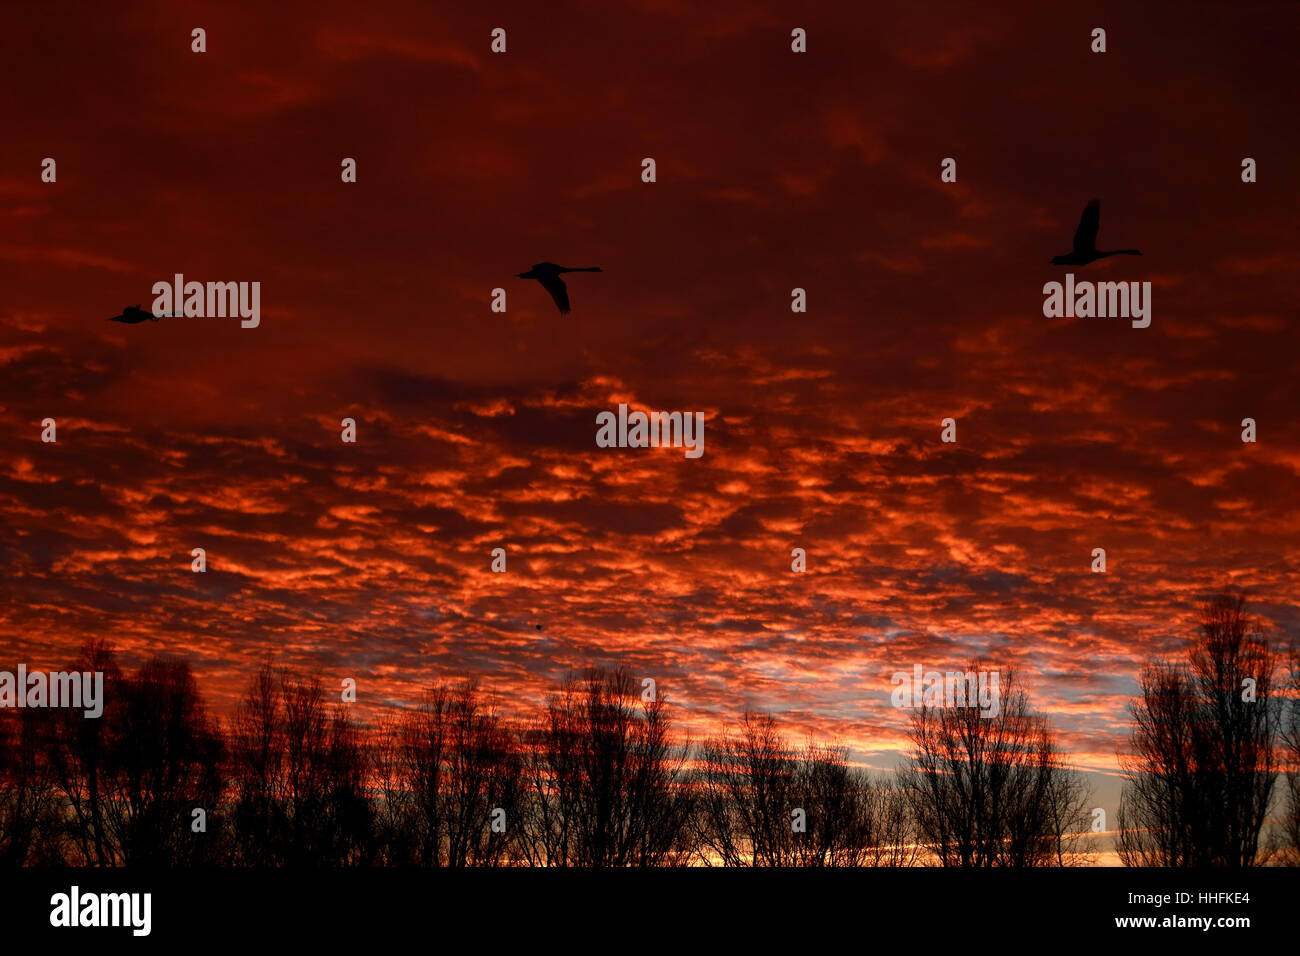 Peterborough, UK. 18th January 2017. The sky looked on fire this morning as three swan take flight above Peterborough - Stock Image